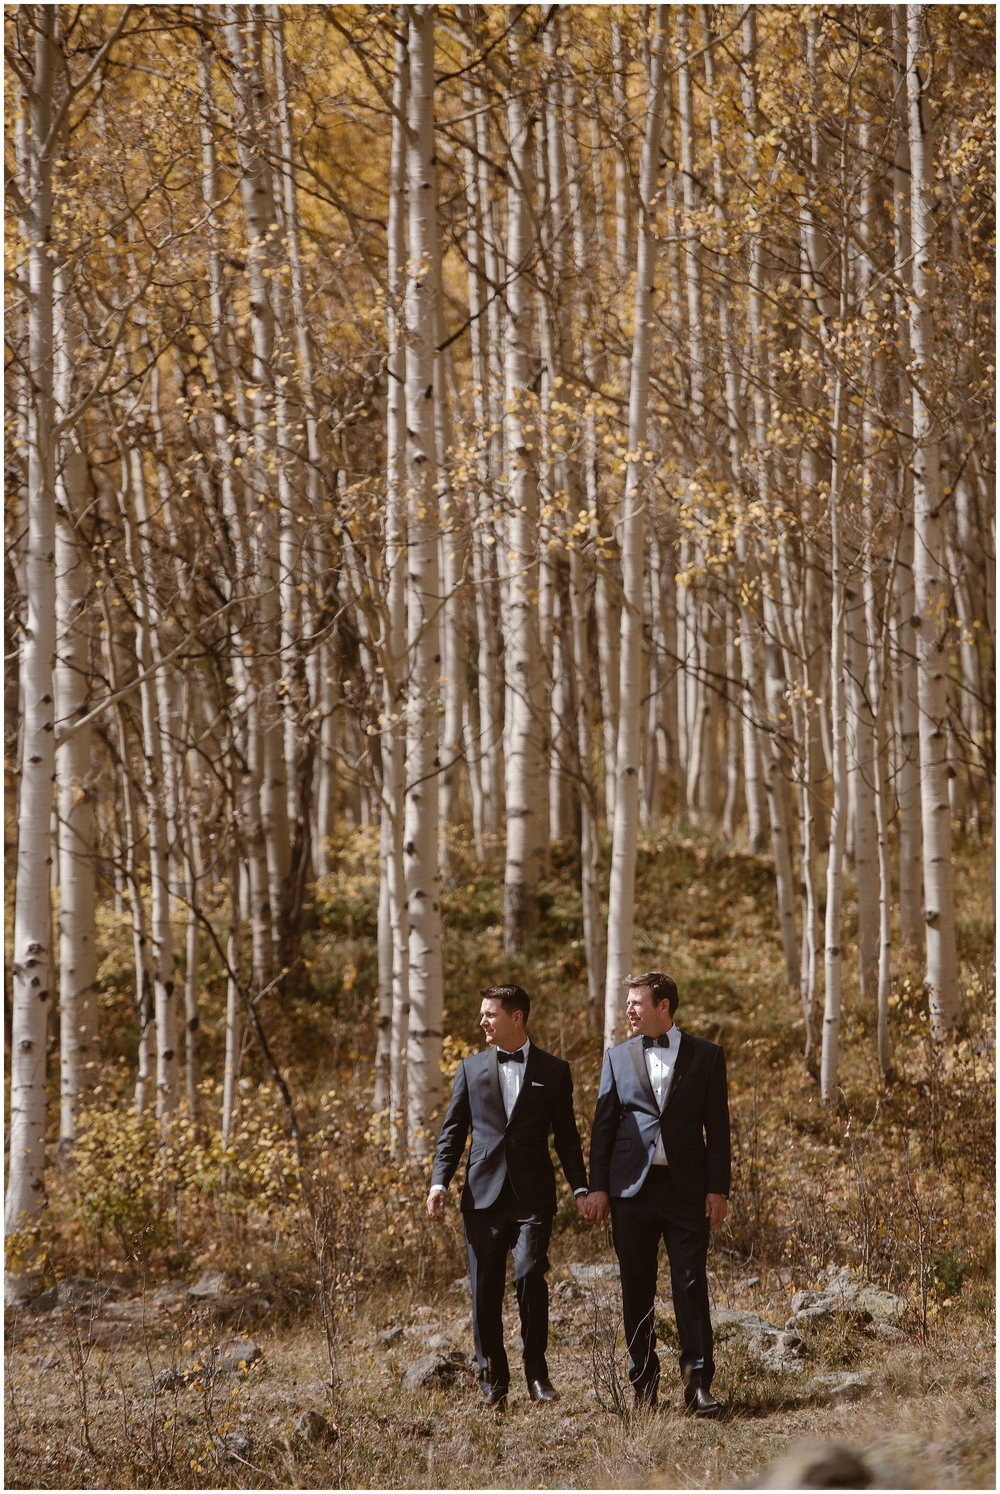 The two grooms, Brian and Ernie, hold hands in the middle of a golden Aspen grove during their fall Colorado mountain wedding. These elopement photos were captured before their elopement ceremony in Ouray, Colorado.